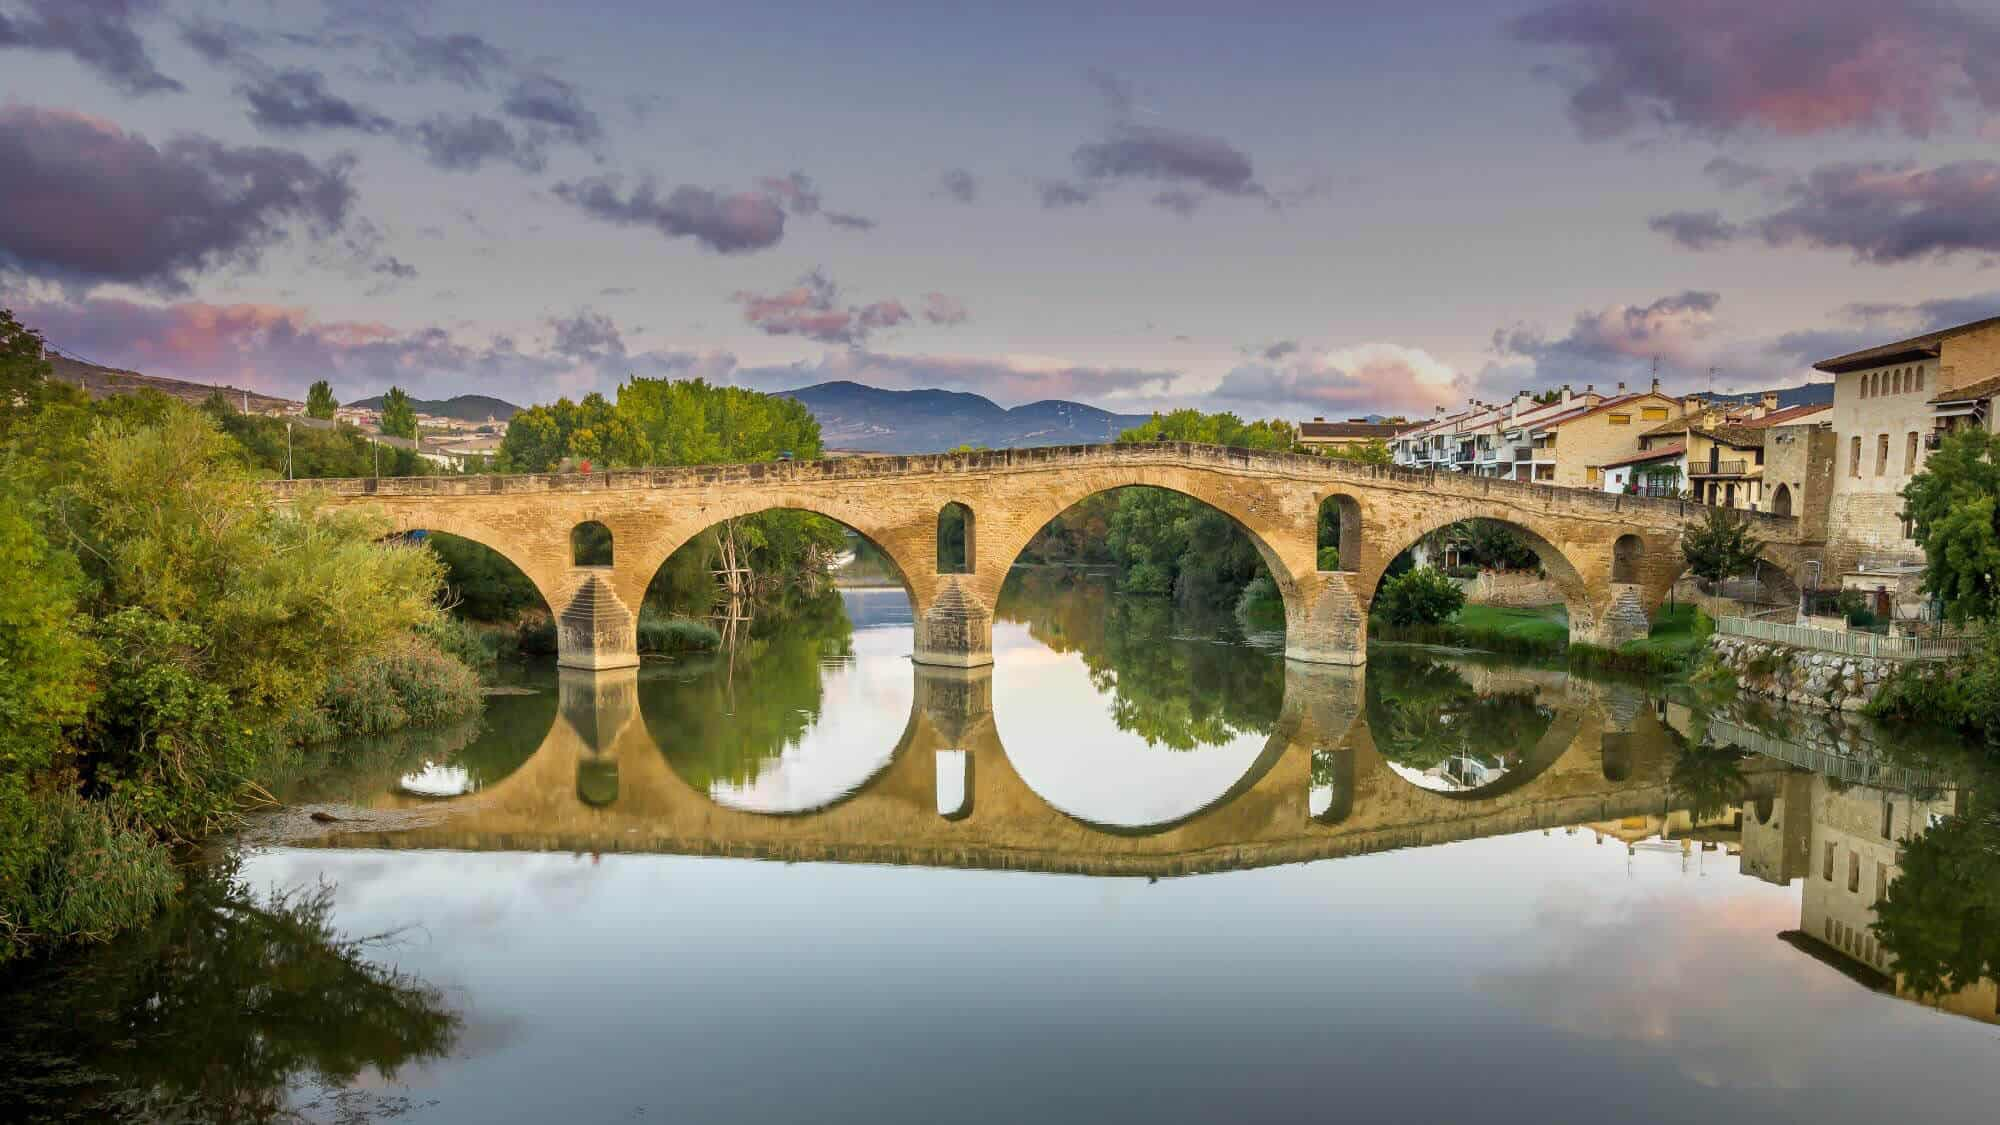 Puente la Reina bridge reflection from the water along the Camino route in France